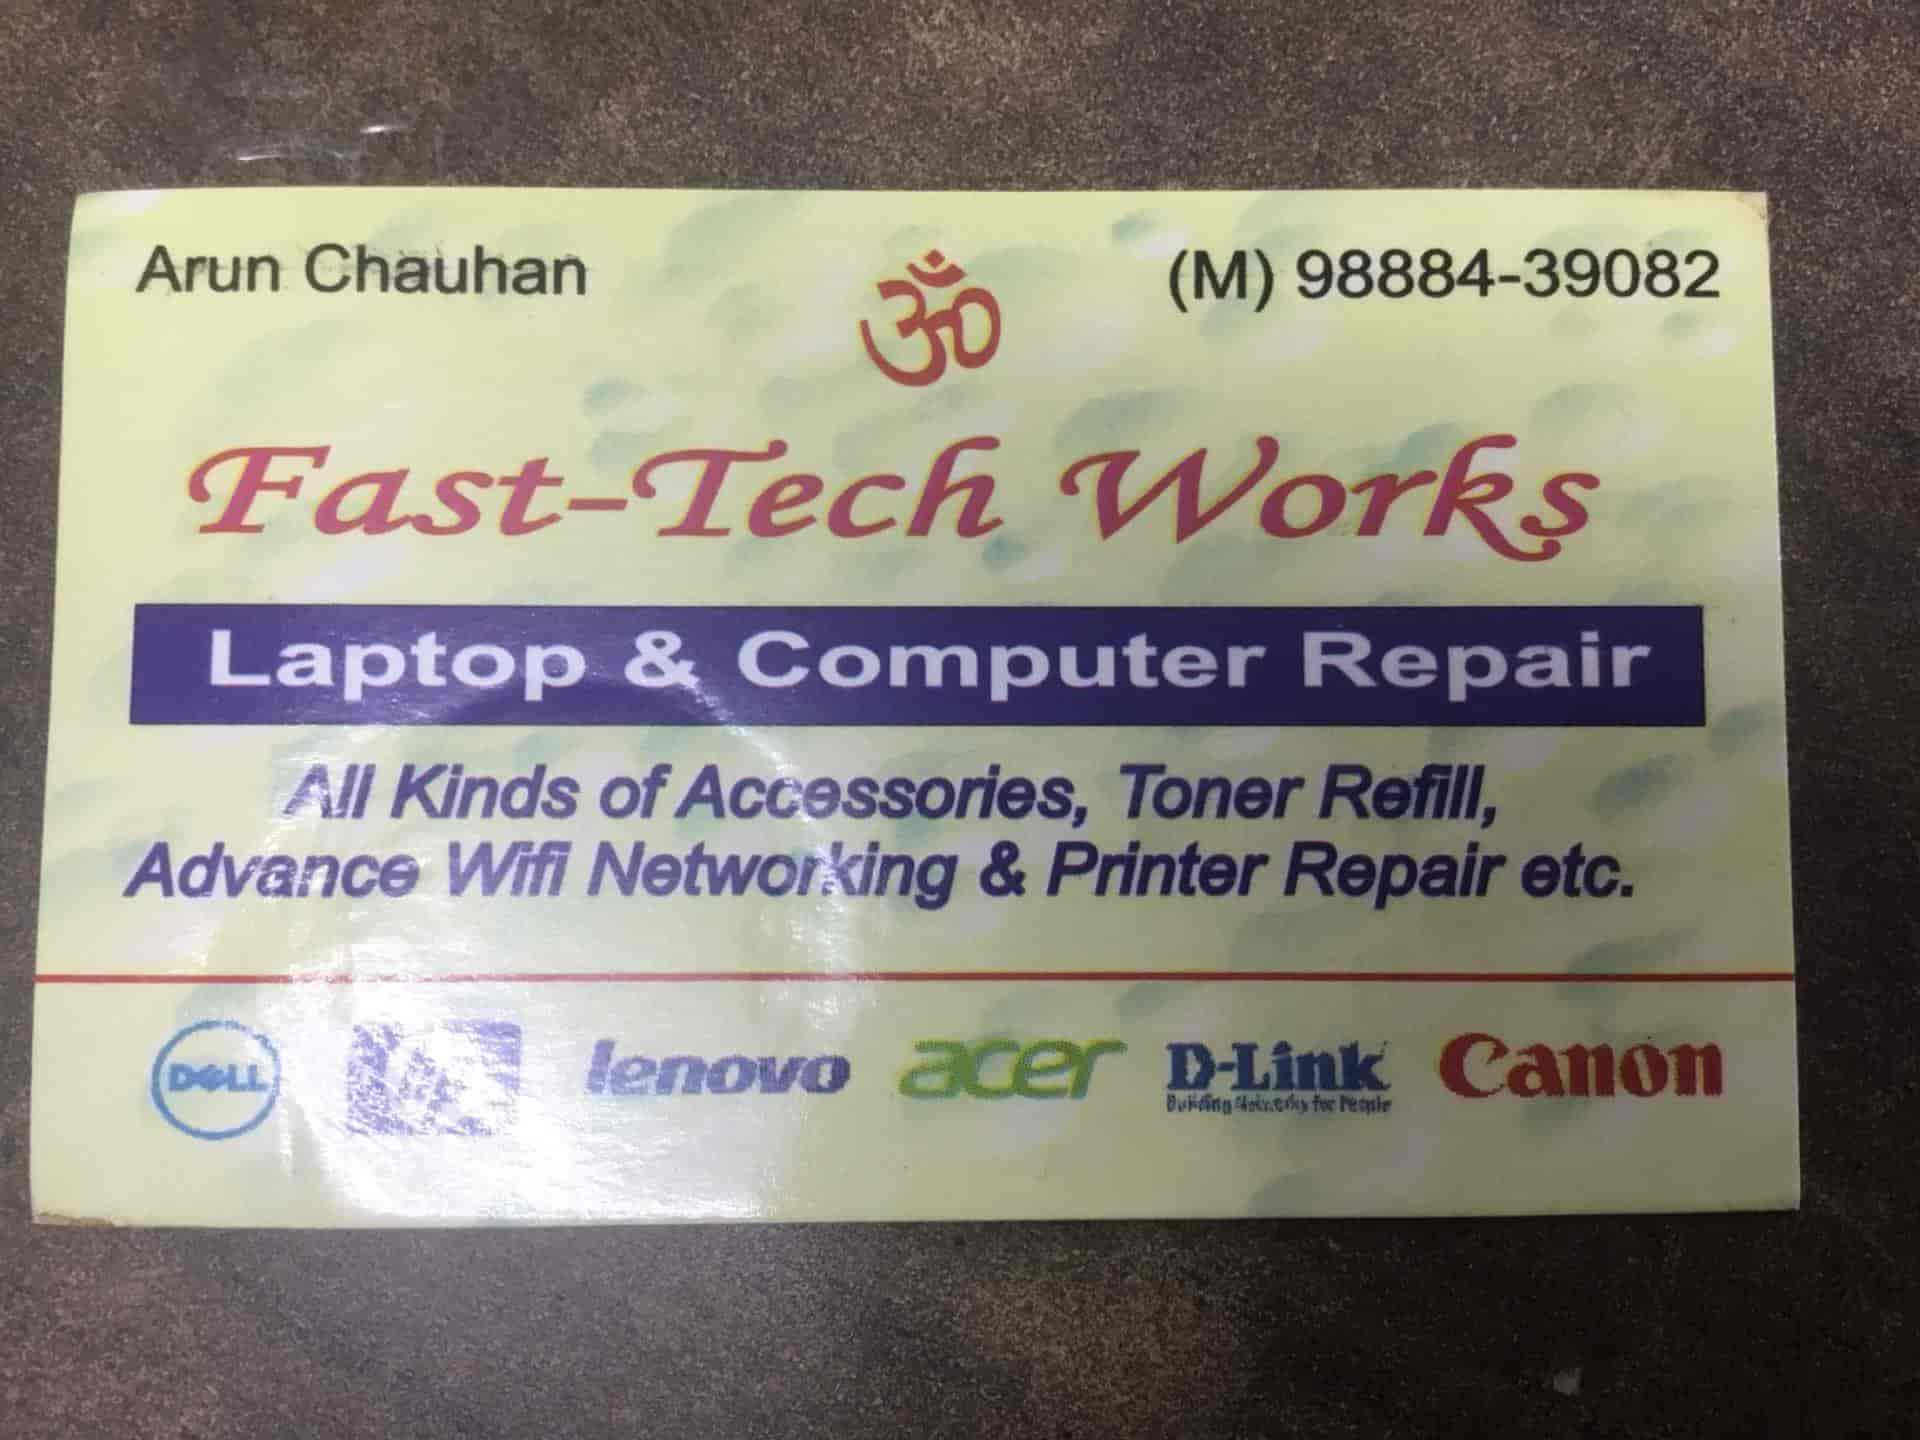 Fast Tech Works Photos, Leela Bhawan, Patiala- Pictures